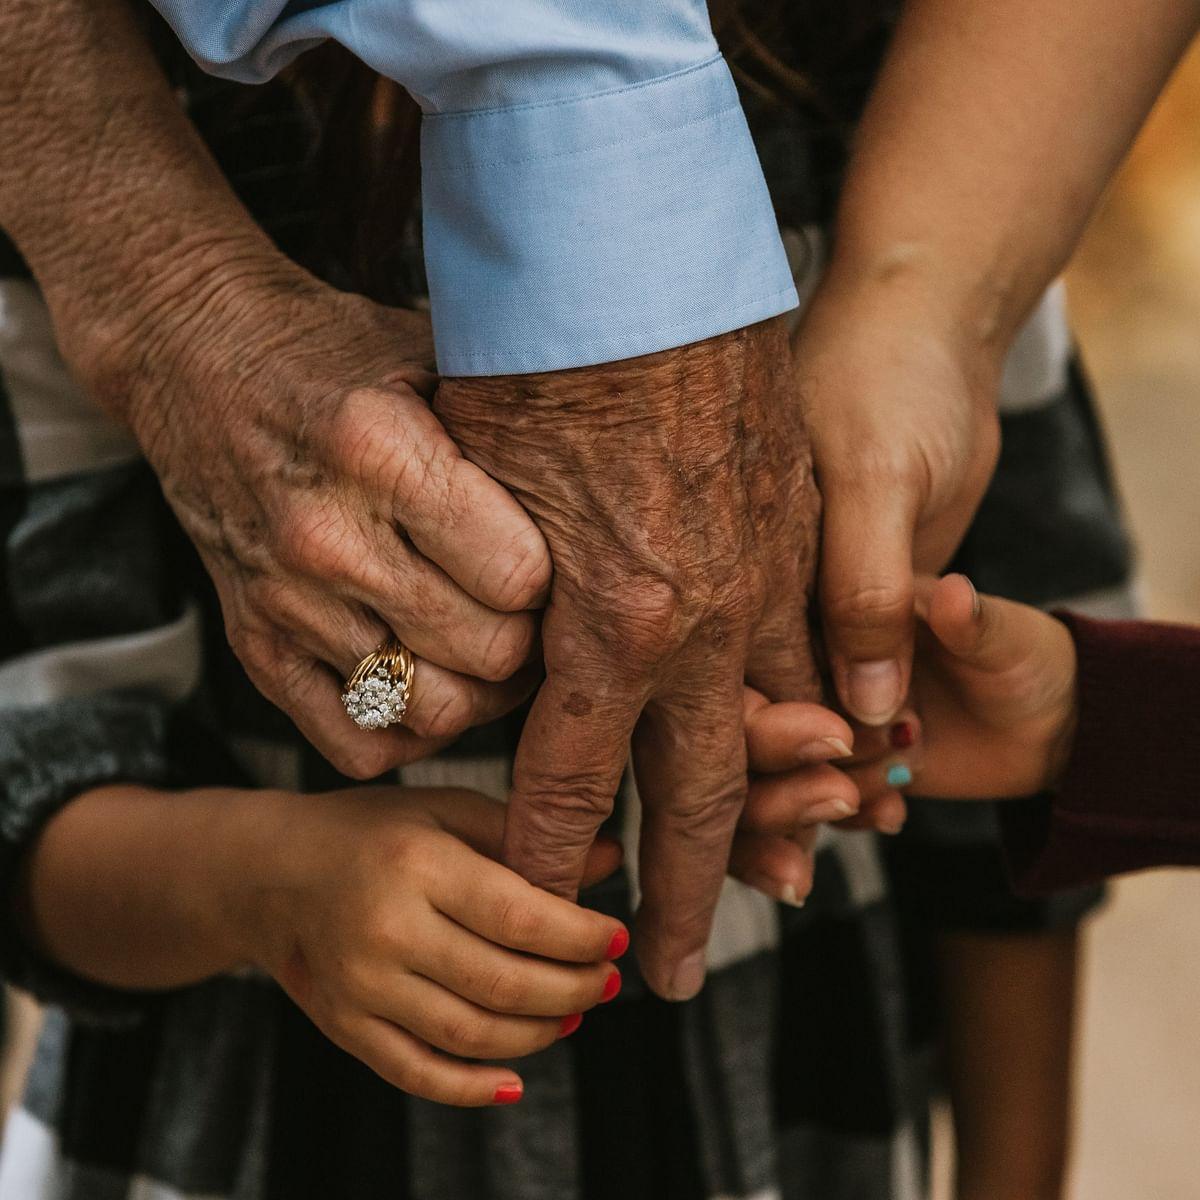 Senior Citizens: Legacy Journal as means to bequeath values to the next generation